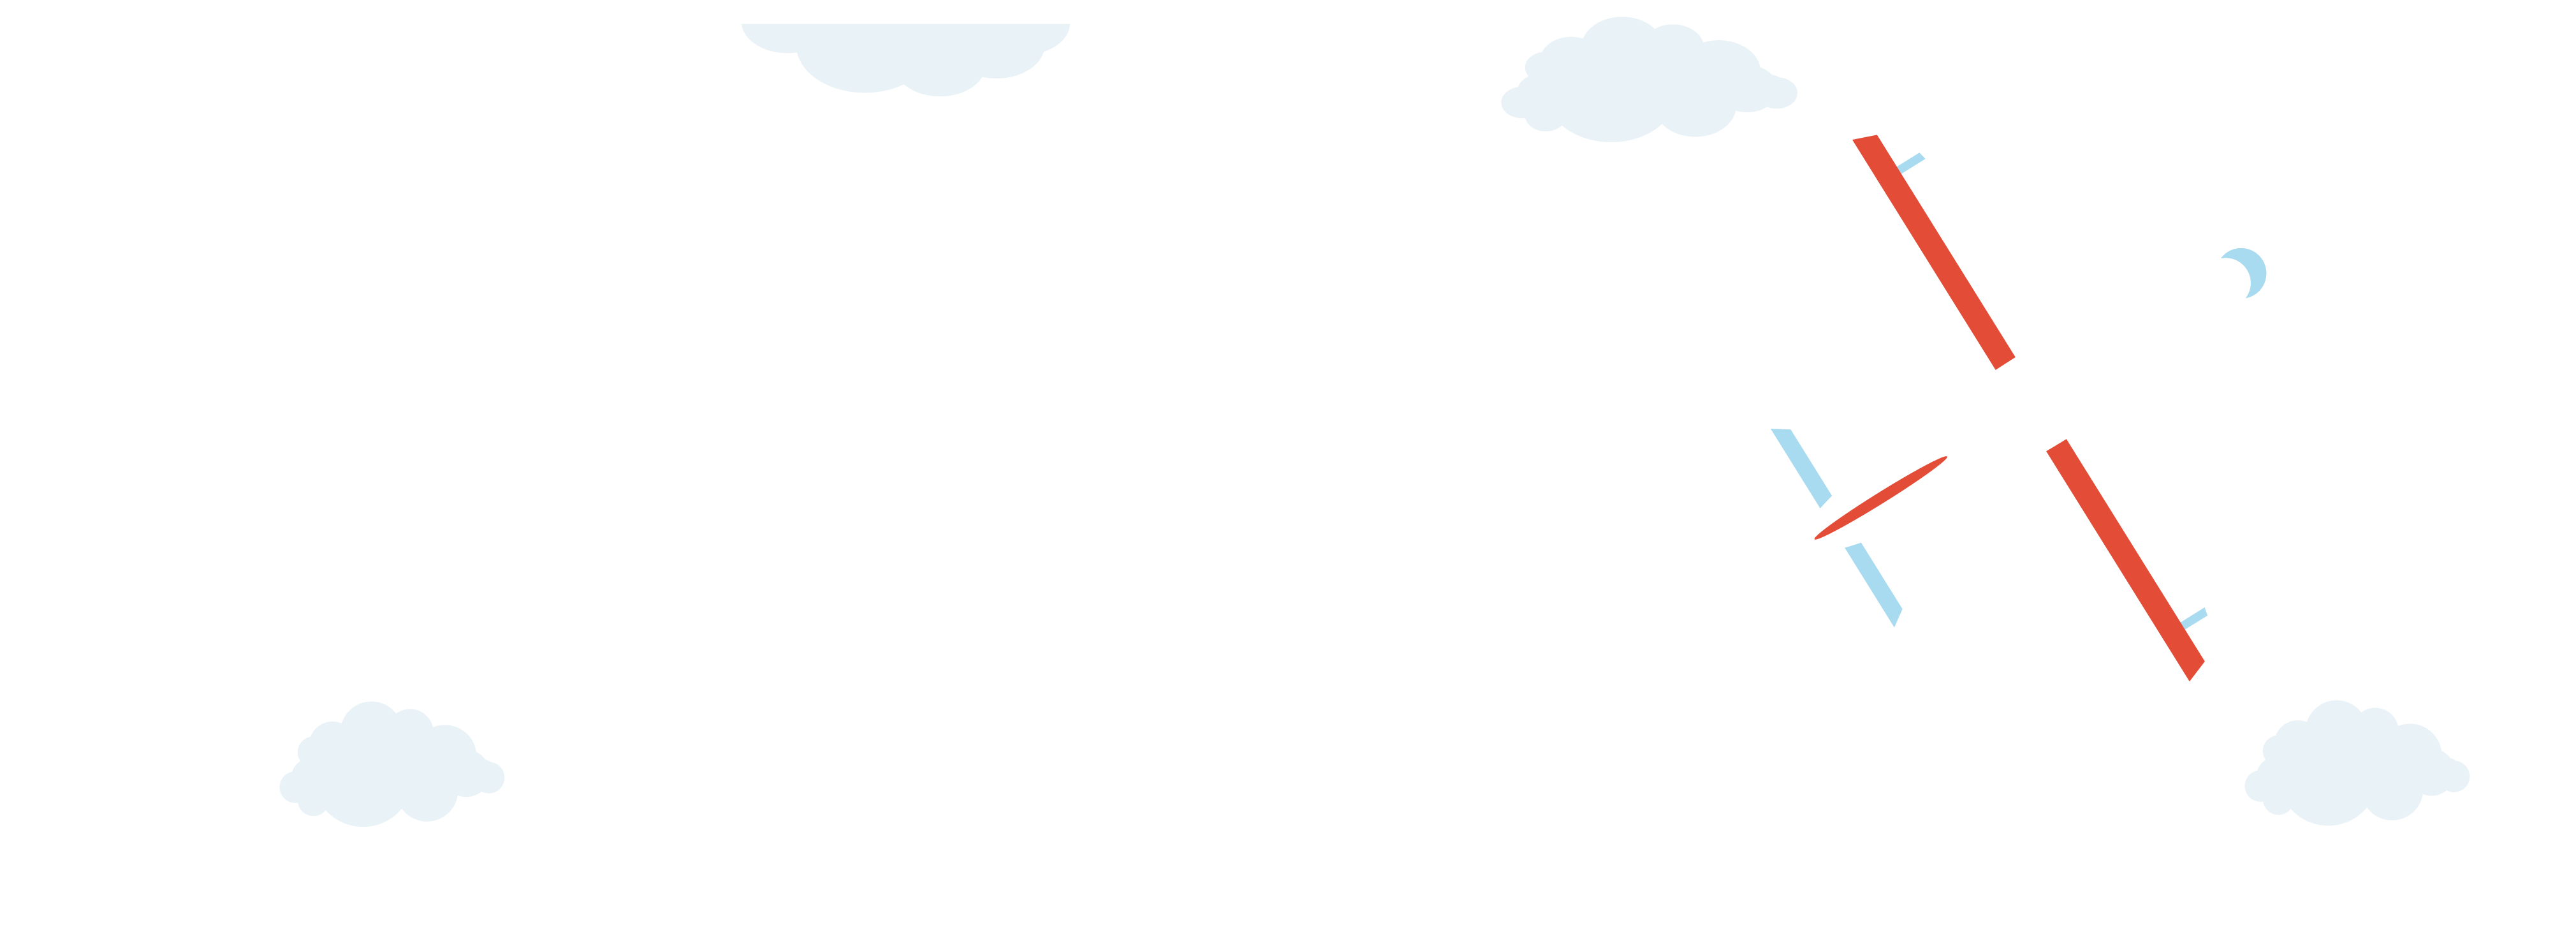 CRO for the Travel Industry